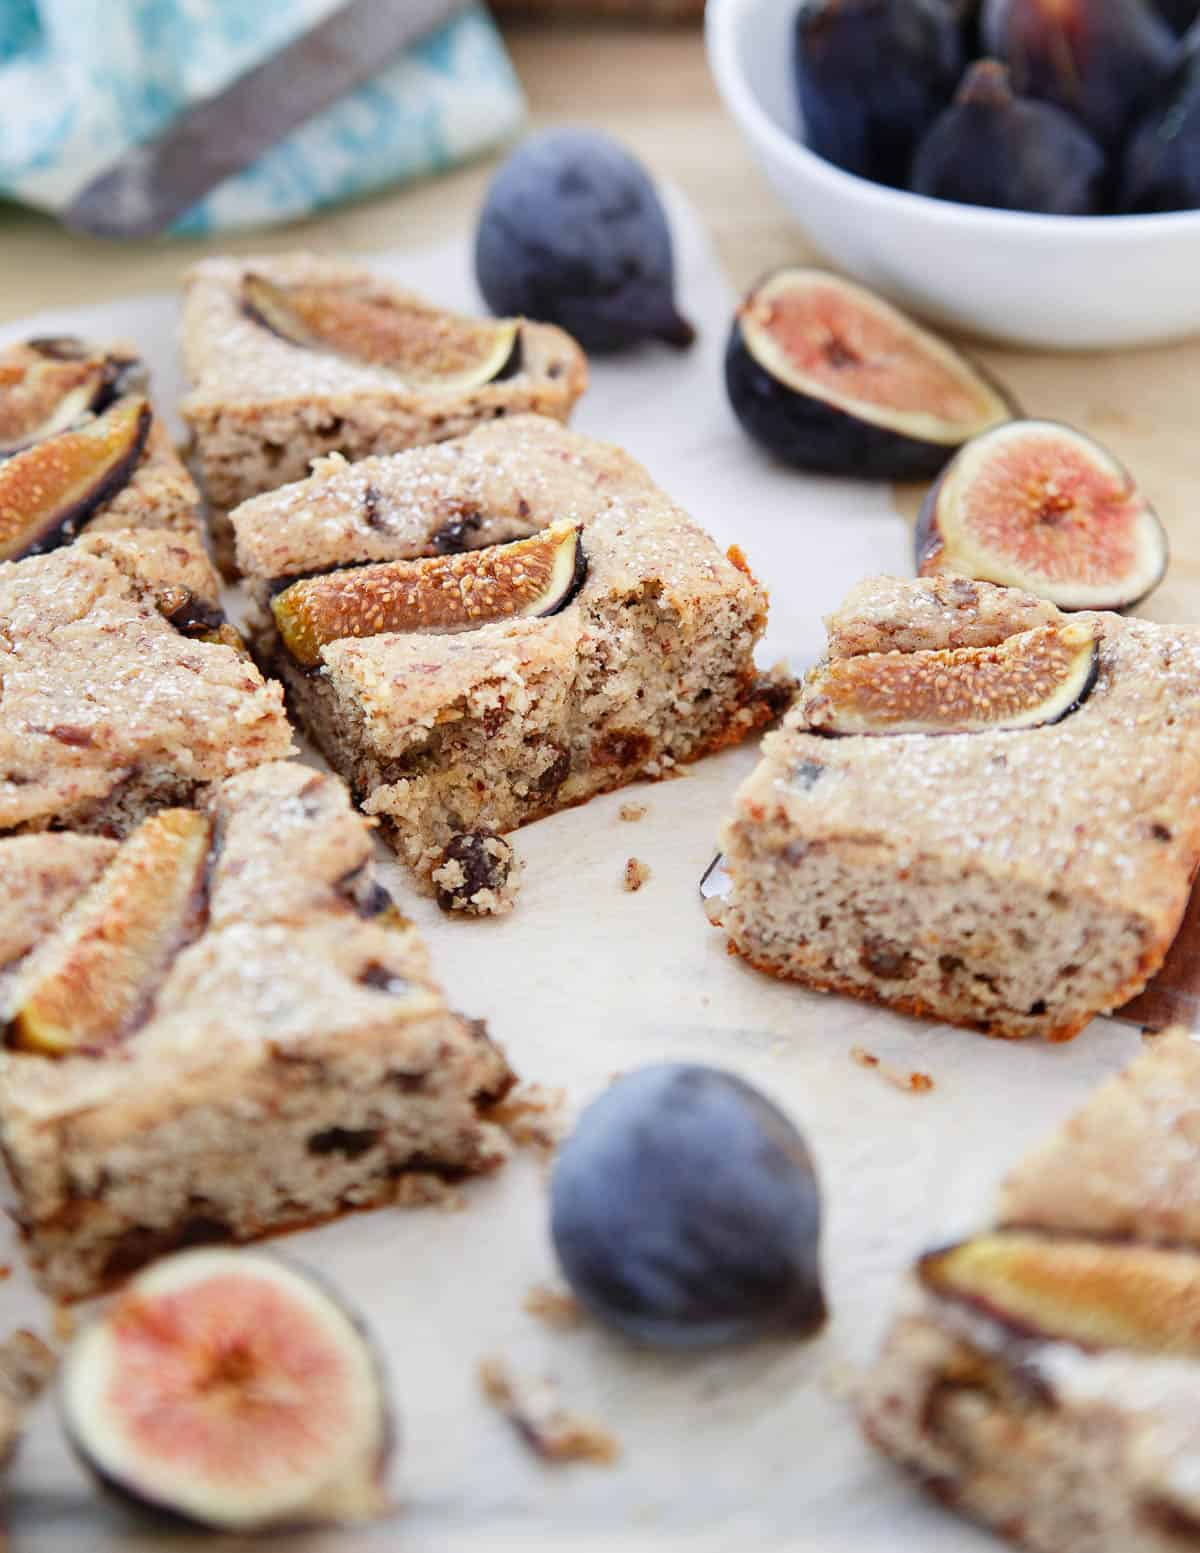 Enjoy a slice of this Ricotta Almond Fig Cake with your morning cup of coffee.